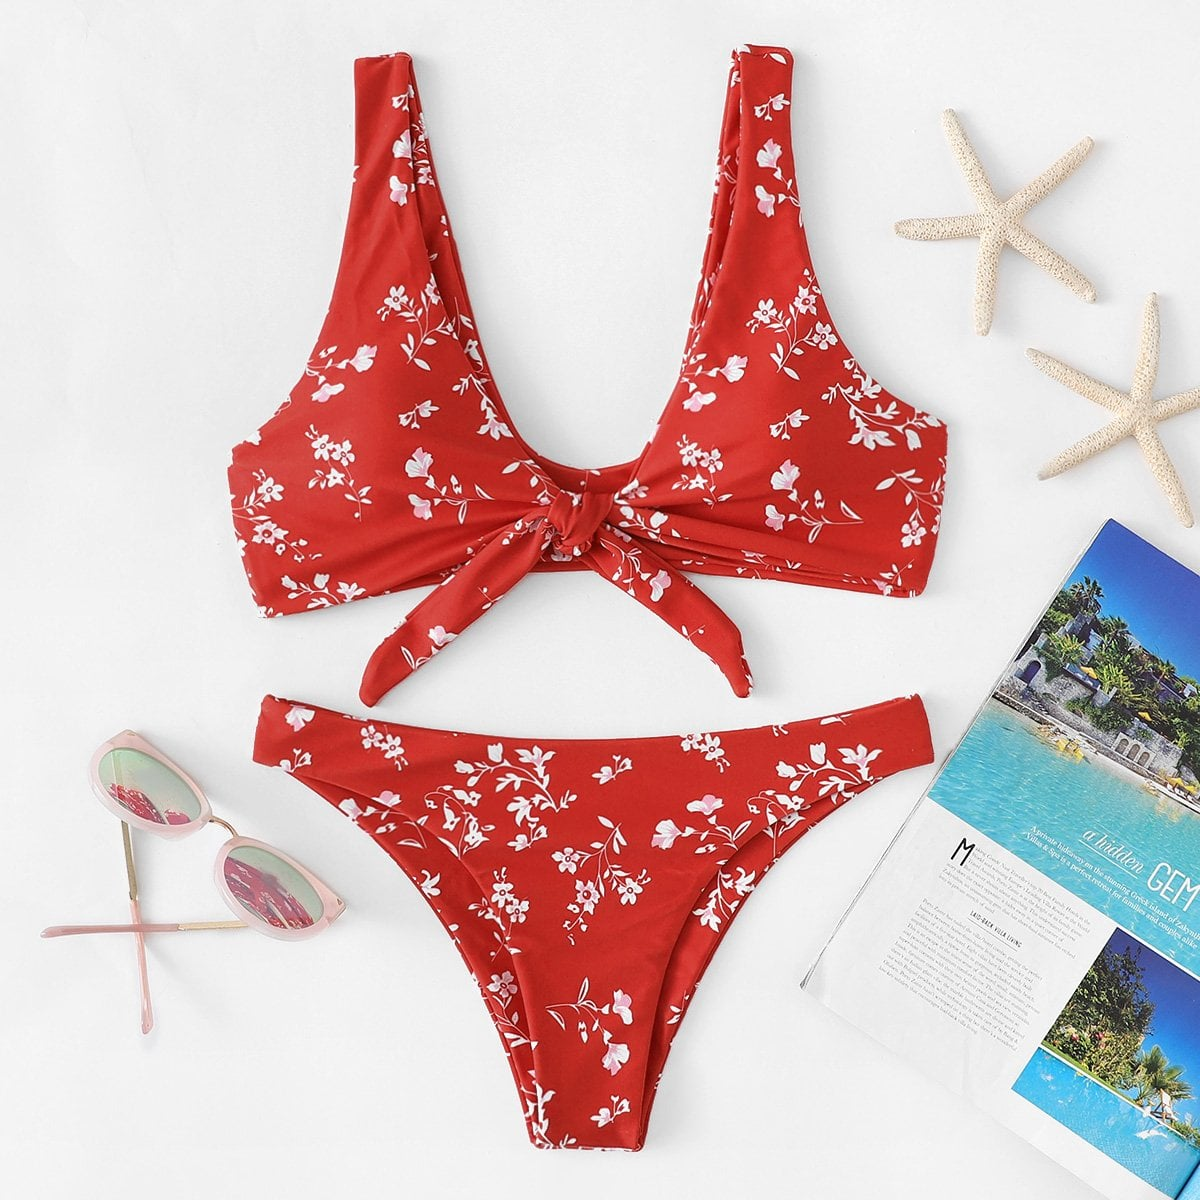 Floral Knot Front Bikini Set in Red by ROMWE on GOOFASH